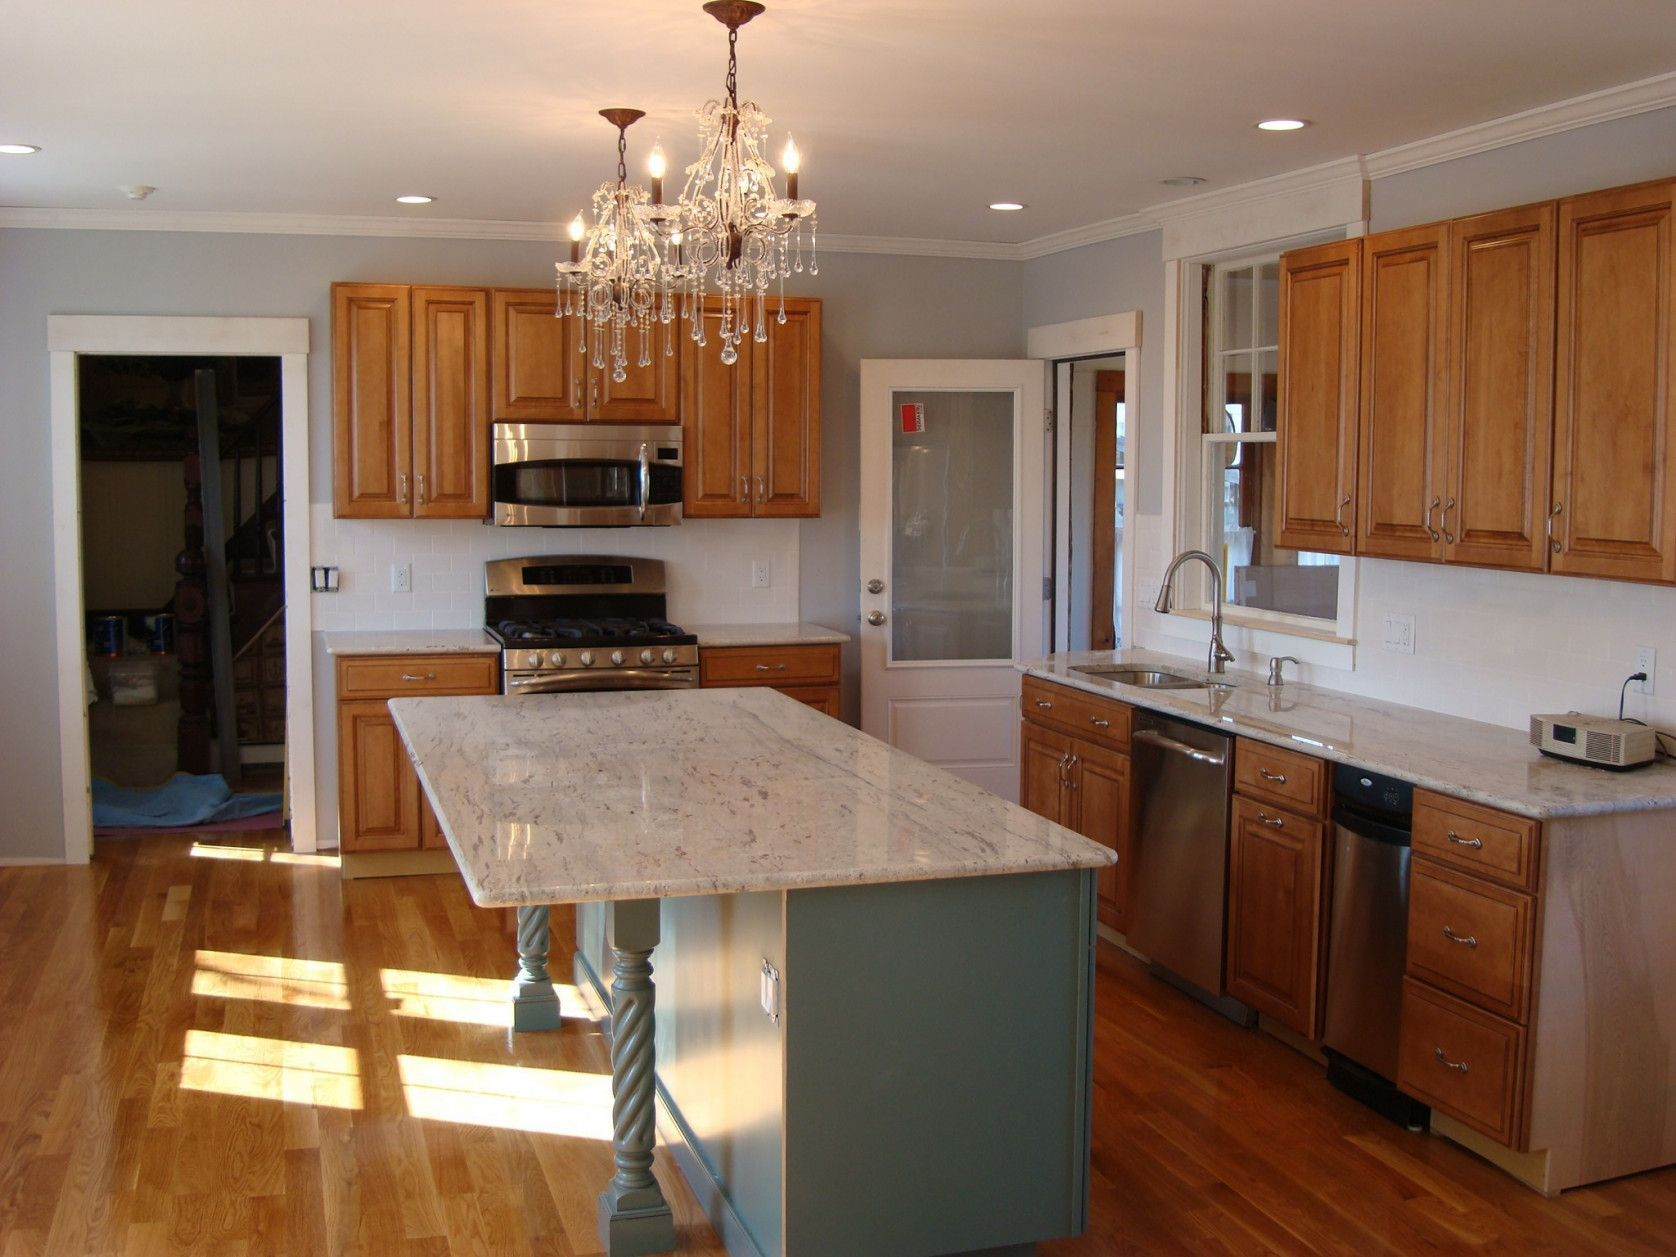 Pin by Tony on Home | Kitchen flooring, Kitchen remodel ...